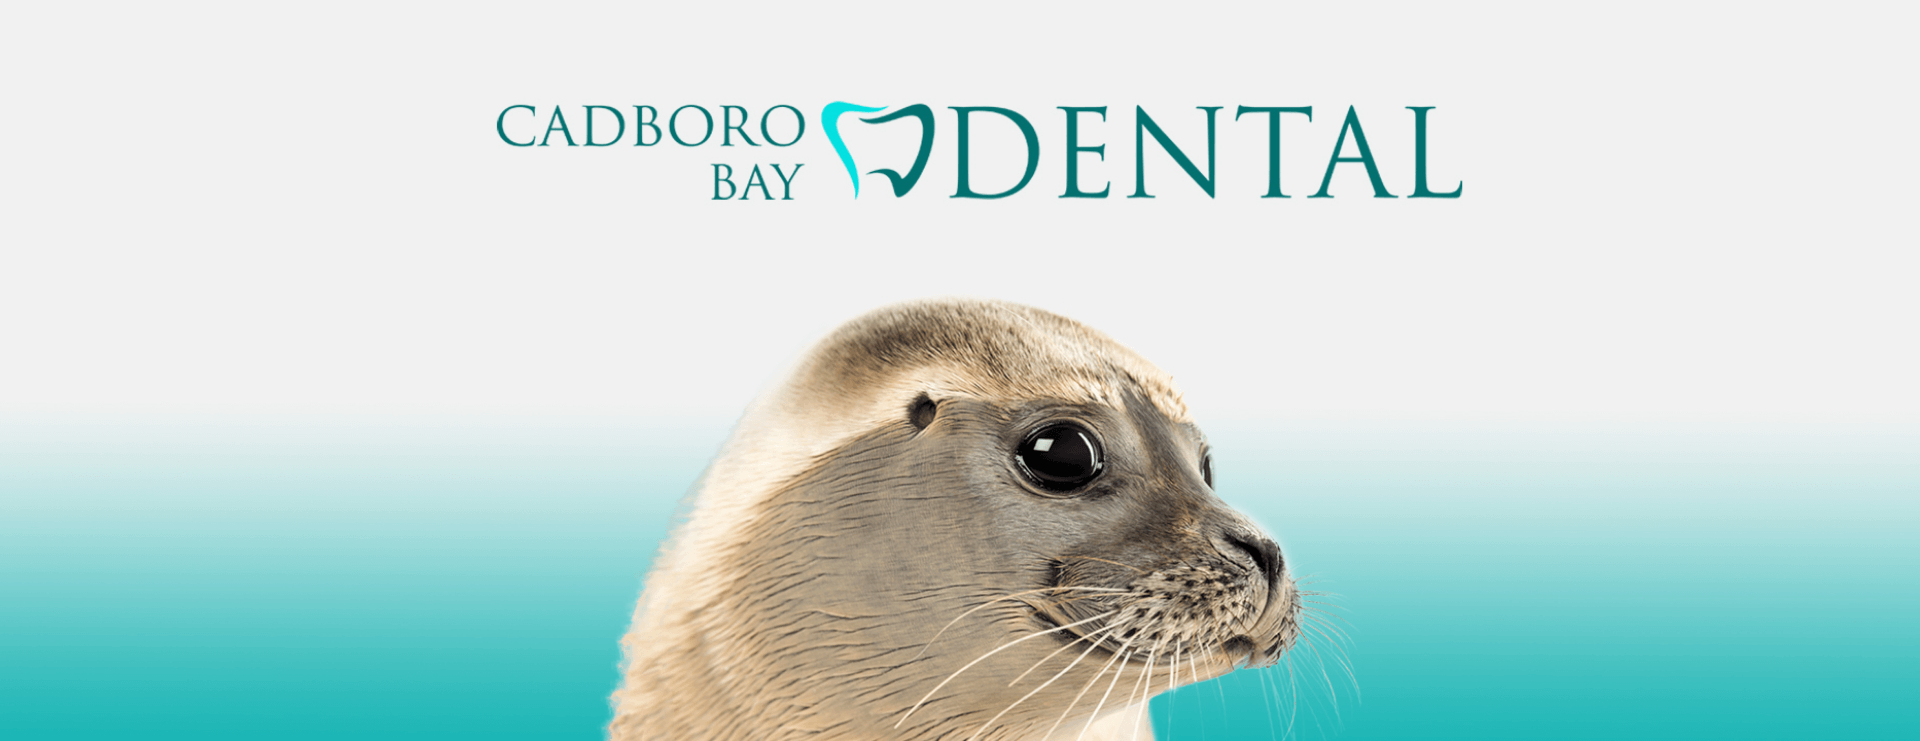 Cadboro Bay Dentist, Victoria BC | Cadboro Bay Dental